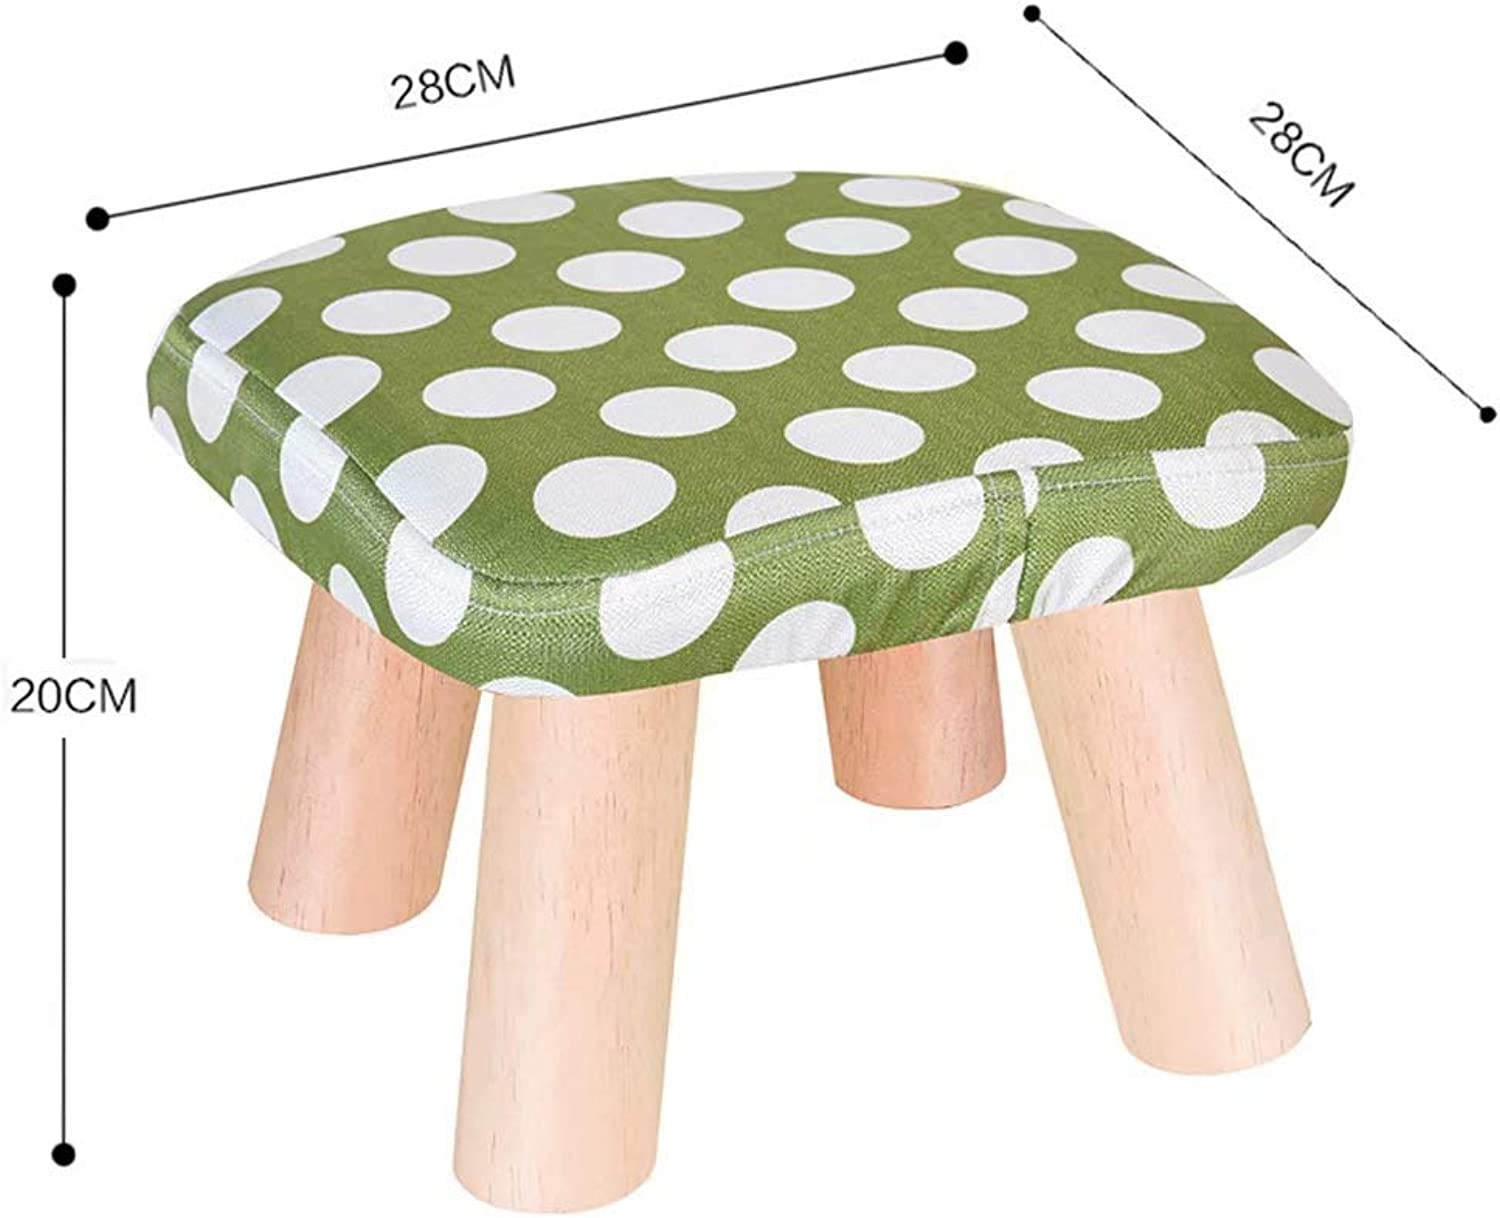 Stools Without Backrest, Round Poufs, Upholstered Footstool